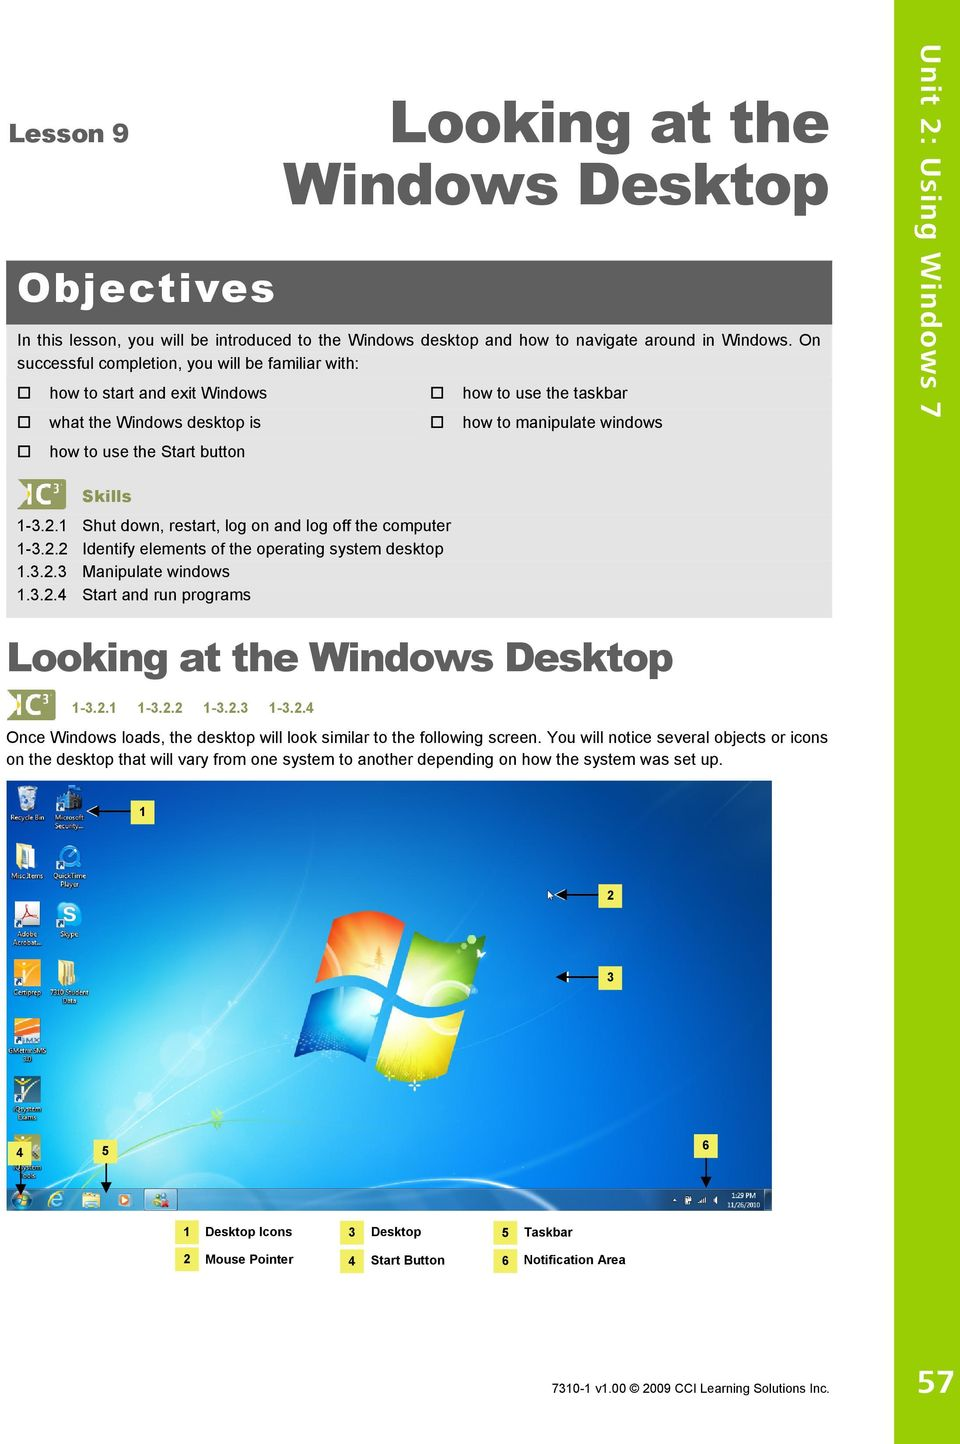 Using Windows 7 Skills 1-3.2.1 Shut down, restart, log on and log off the computer 1-3.2.2 Identify elements of the operating system desktop 1.3.2.3 Manipulate windows 1.3.2.4 Start and run programs Looking at the Windows Desktop 1-3.